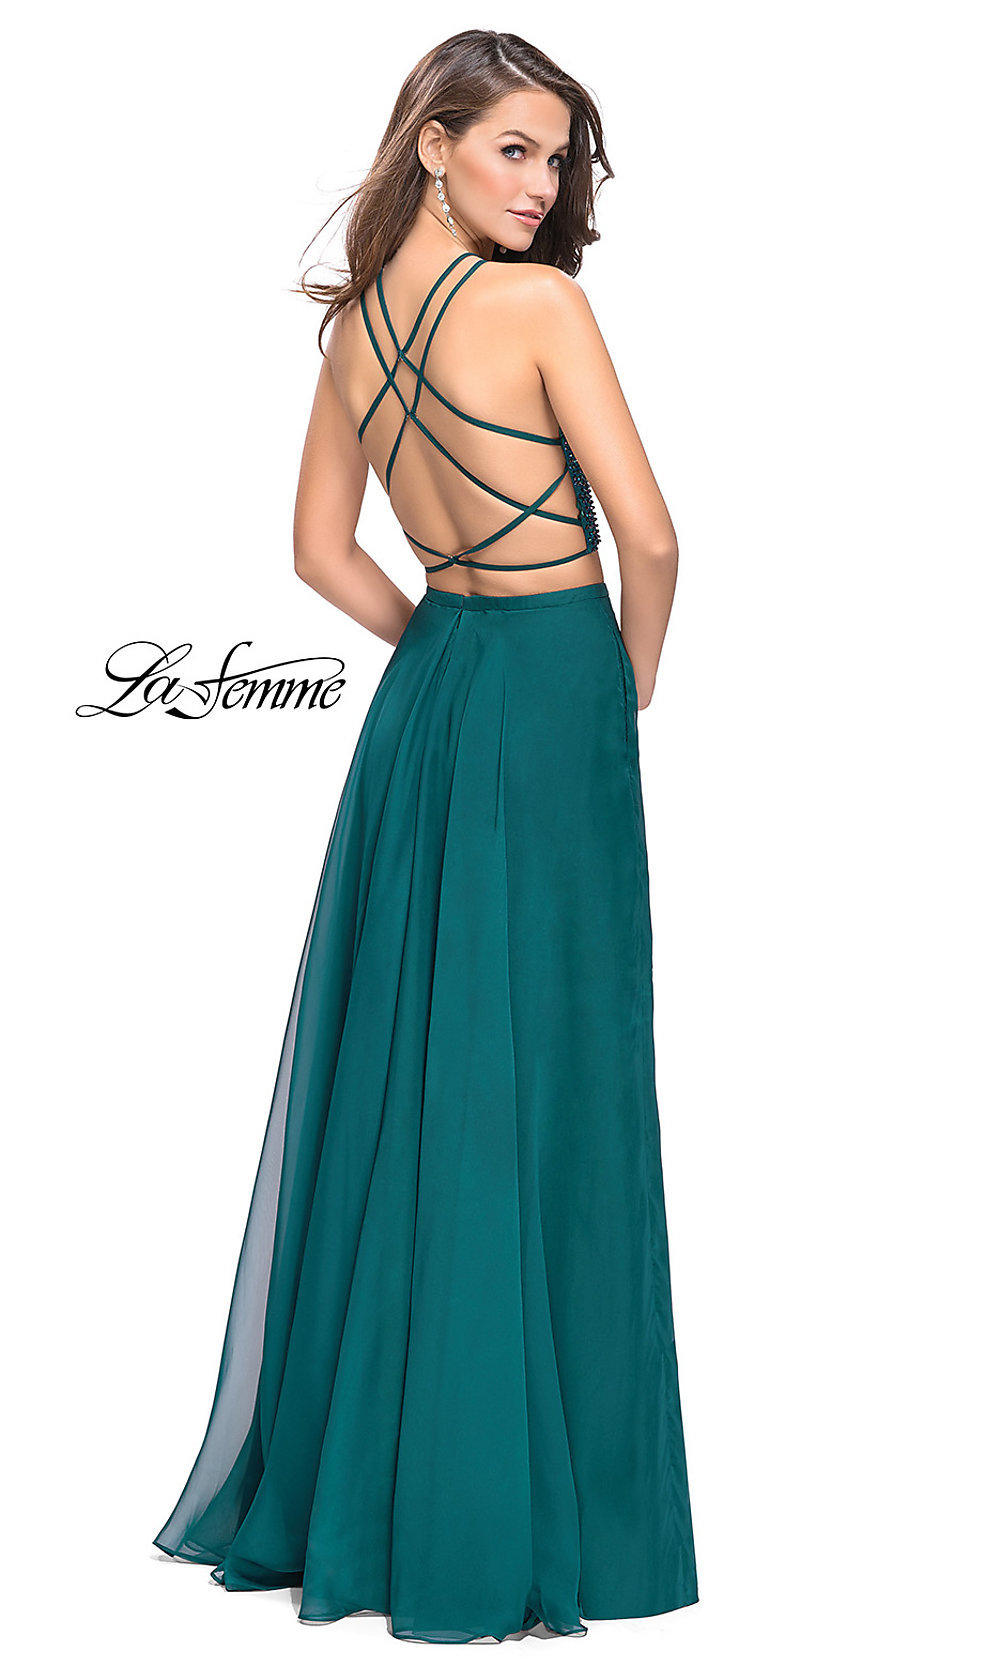 Luxury Prom Dresses In Concord Nc Frieze - All Wedding Dresses ...